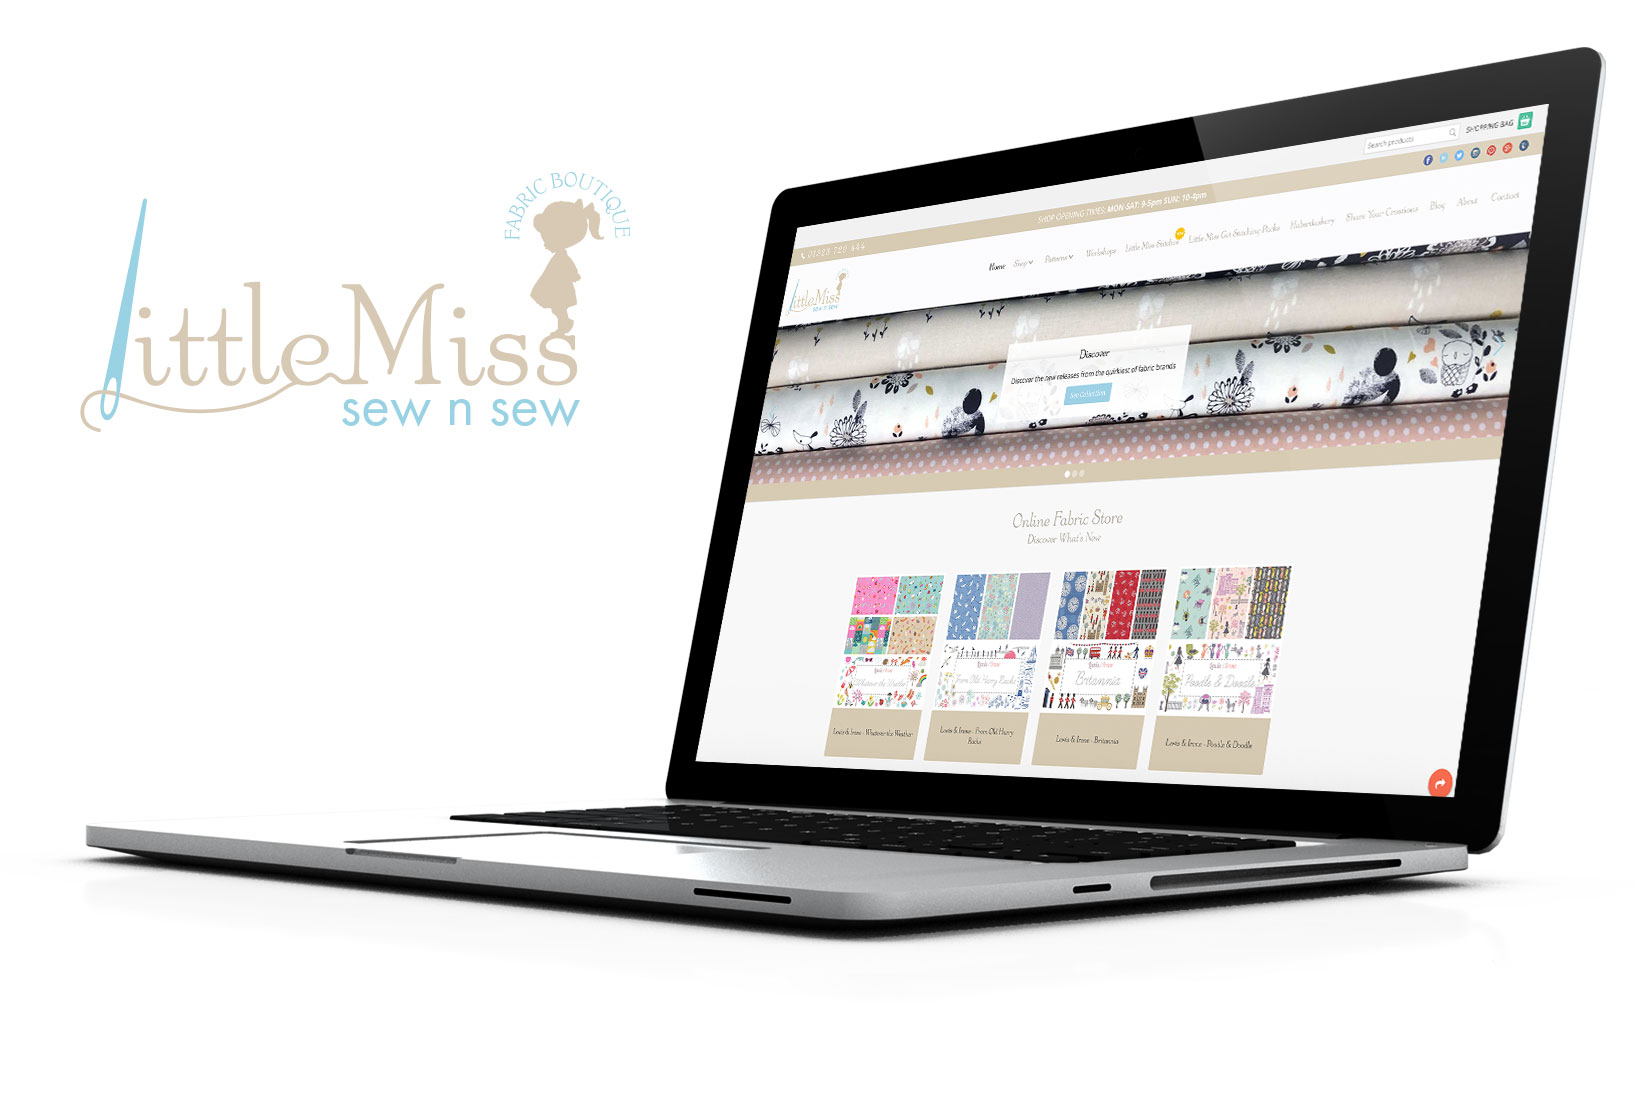 Laptop showing Little Miss Sew n Sew ecommerce